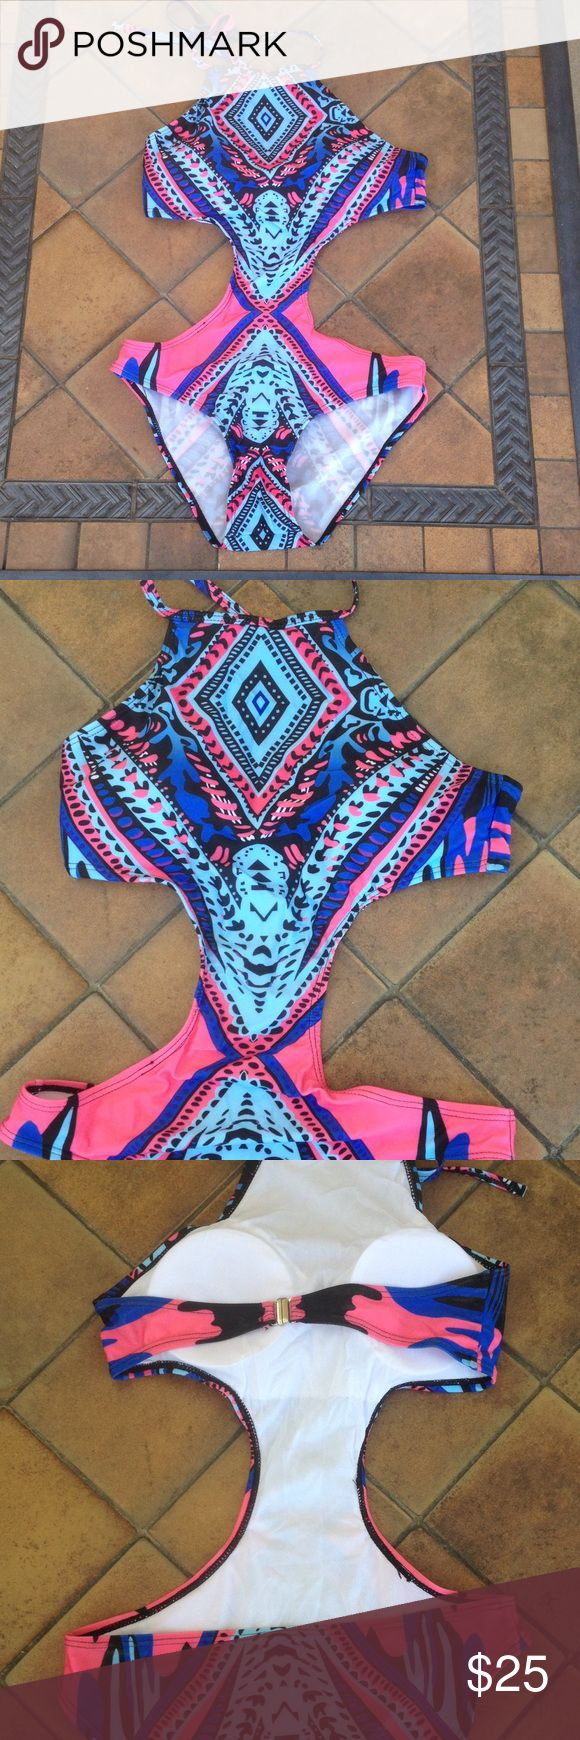 Aztec print cut out minimize one piece bikini Aztec print cut out minimize one piece bikini. Super cute!! My torso is too long. Has a halter top. Has built in pads that will fit an A-B cup. Pink and blue Aztec print. Never worn No brand Swim One Pieces